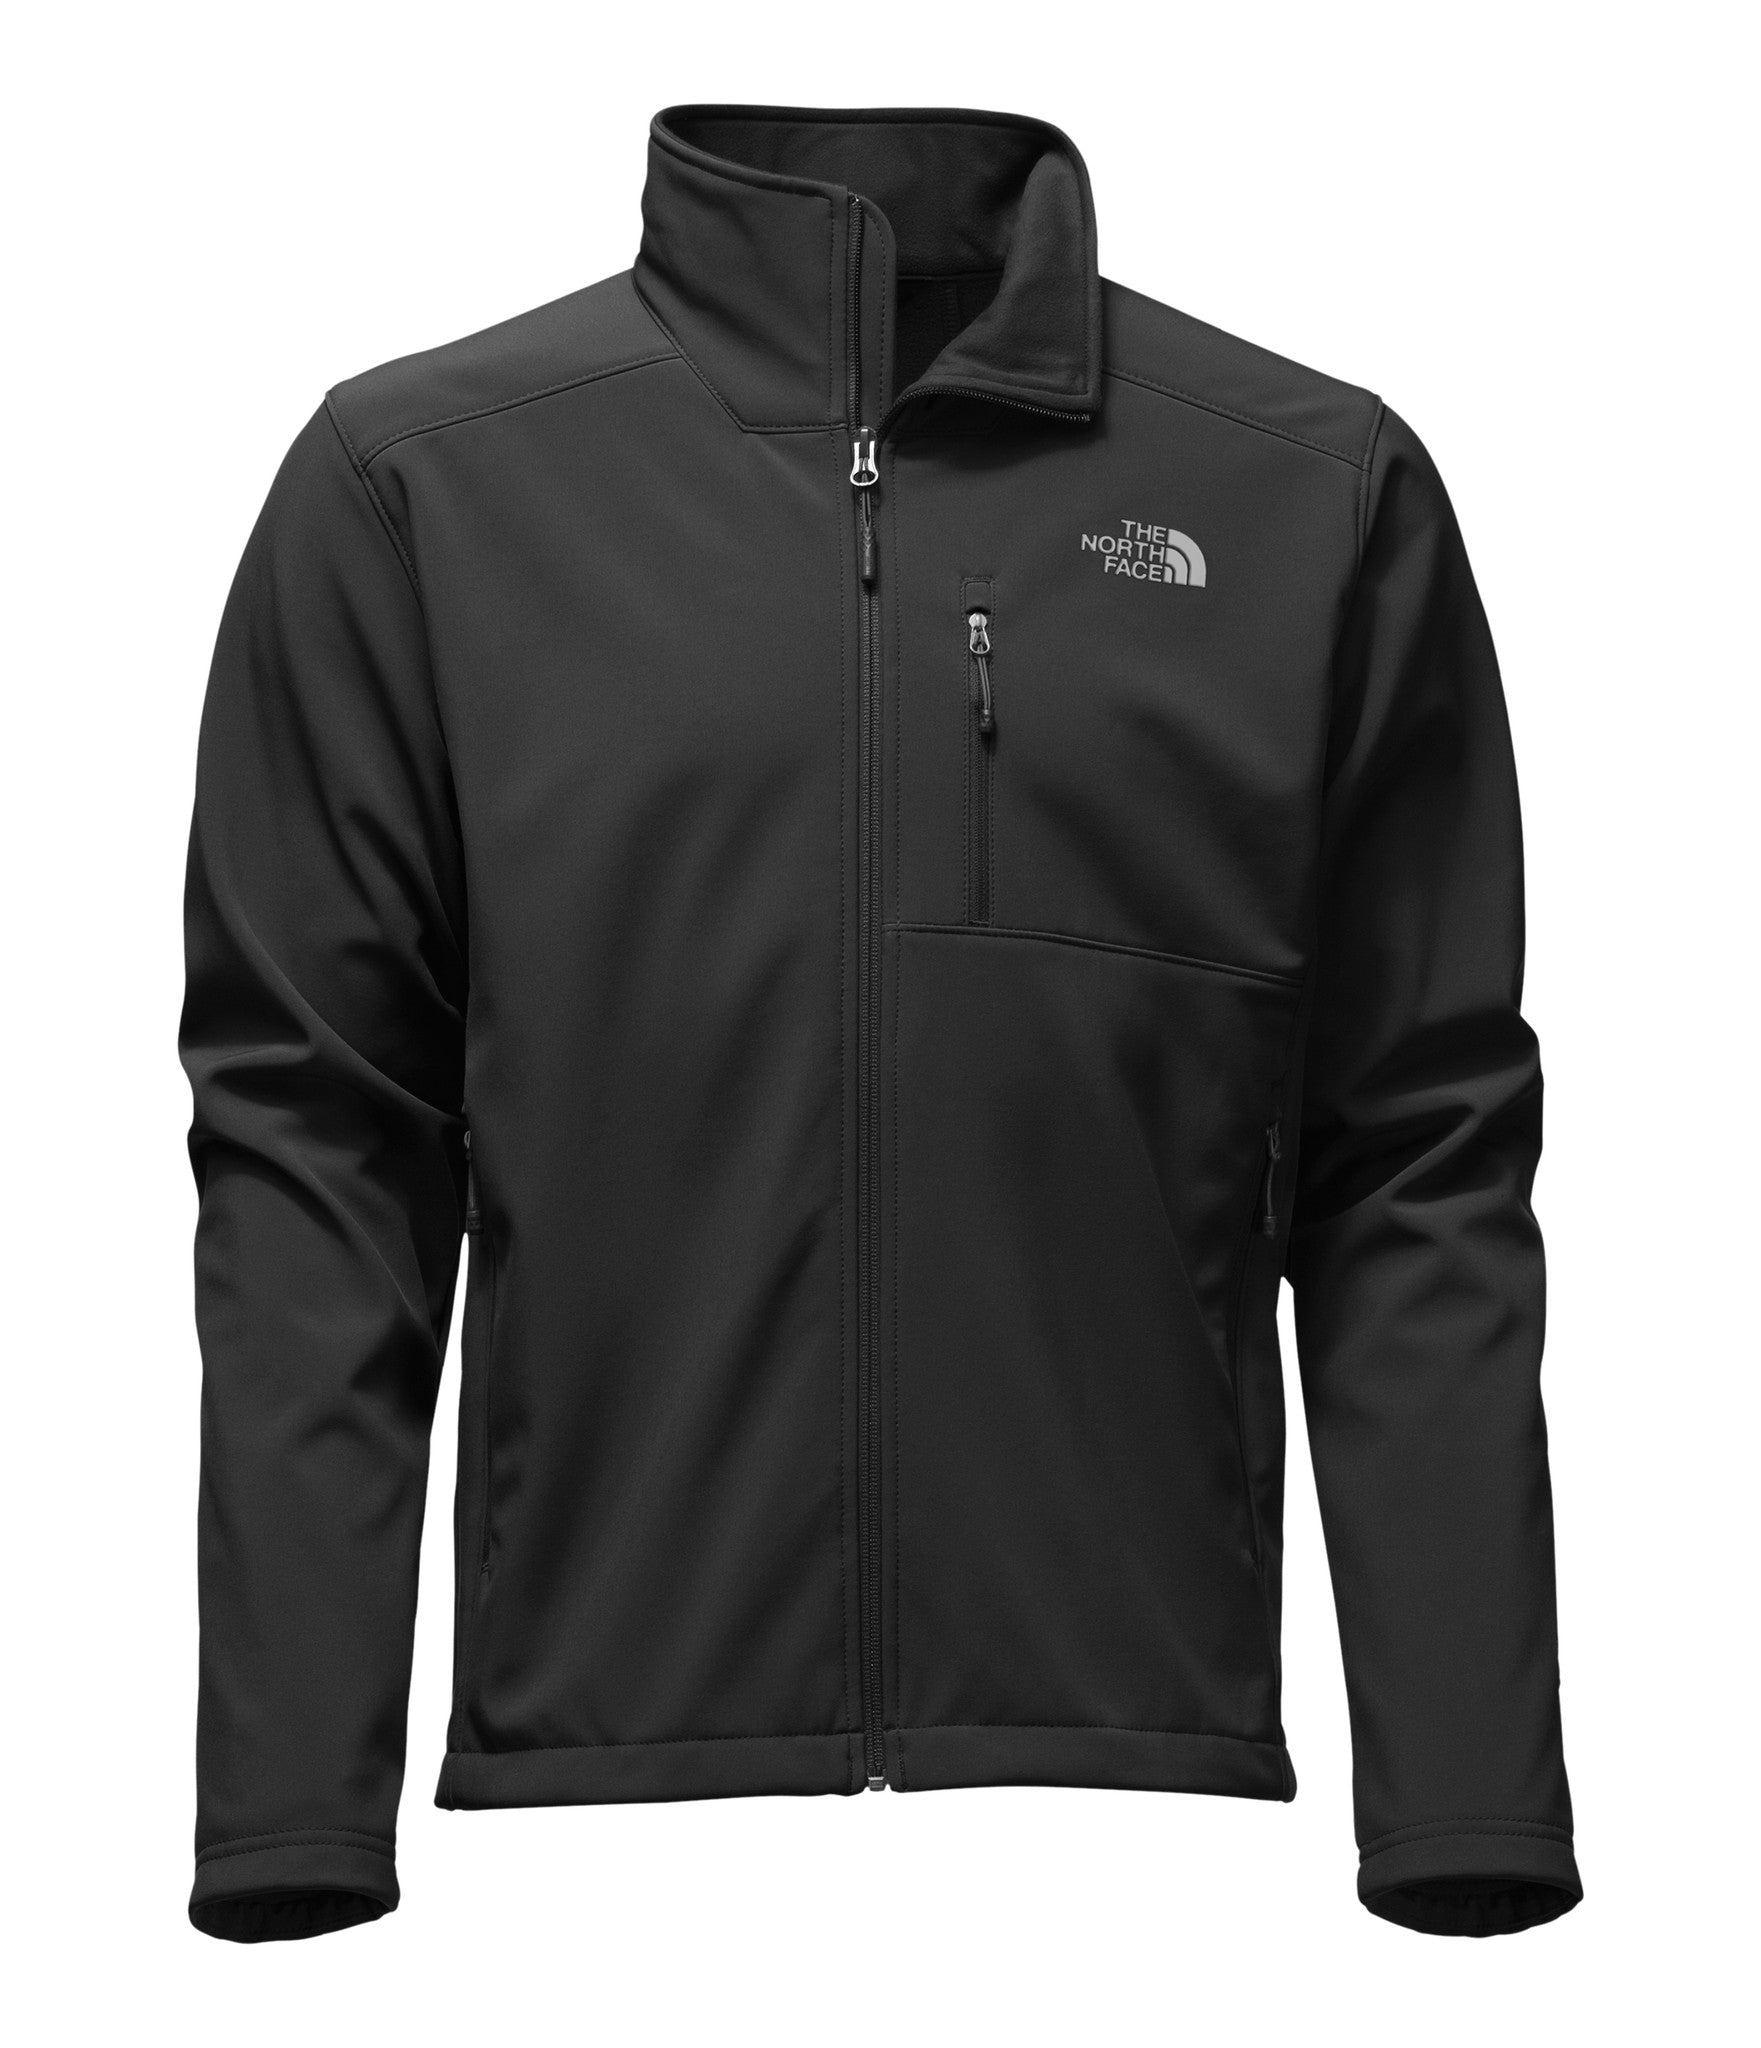 The North Face Men's APEX Bionic 2 Jacket Tall in TNF Black